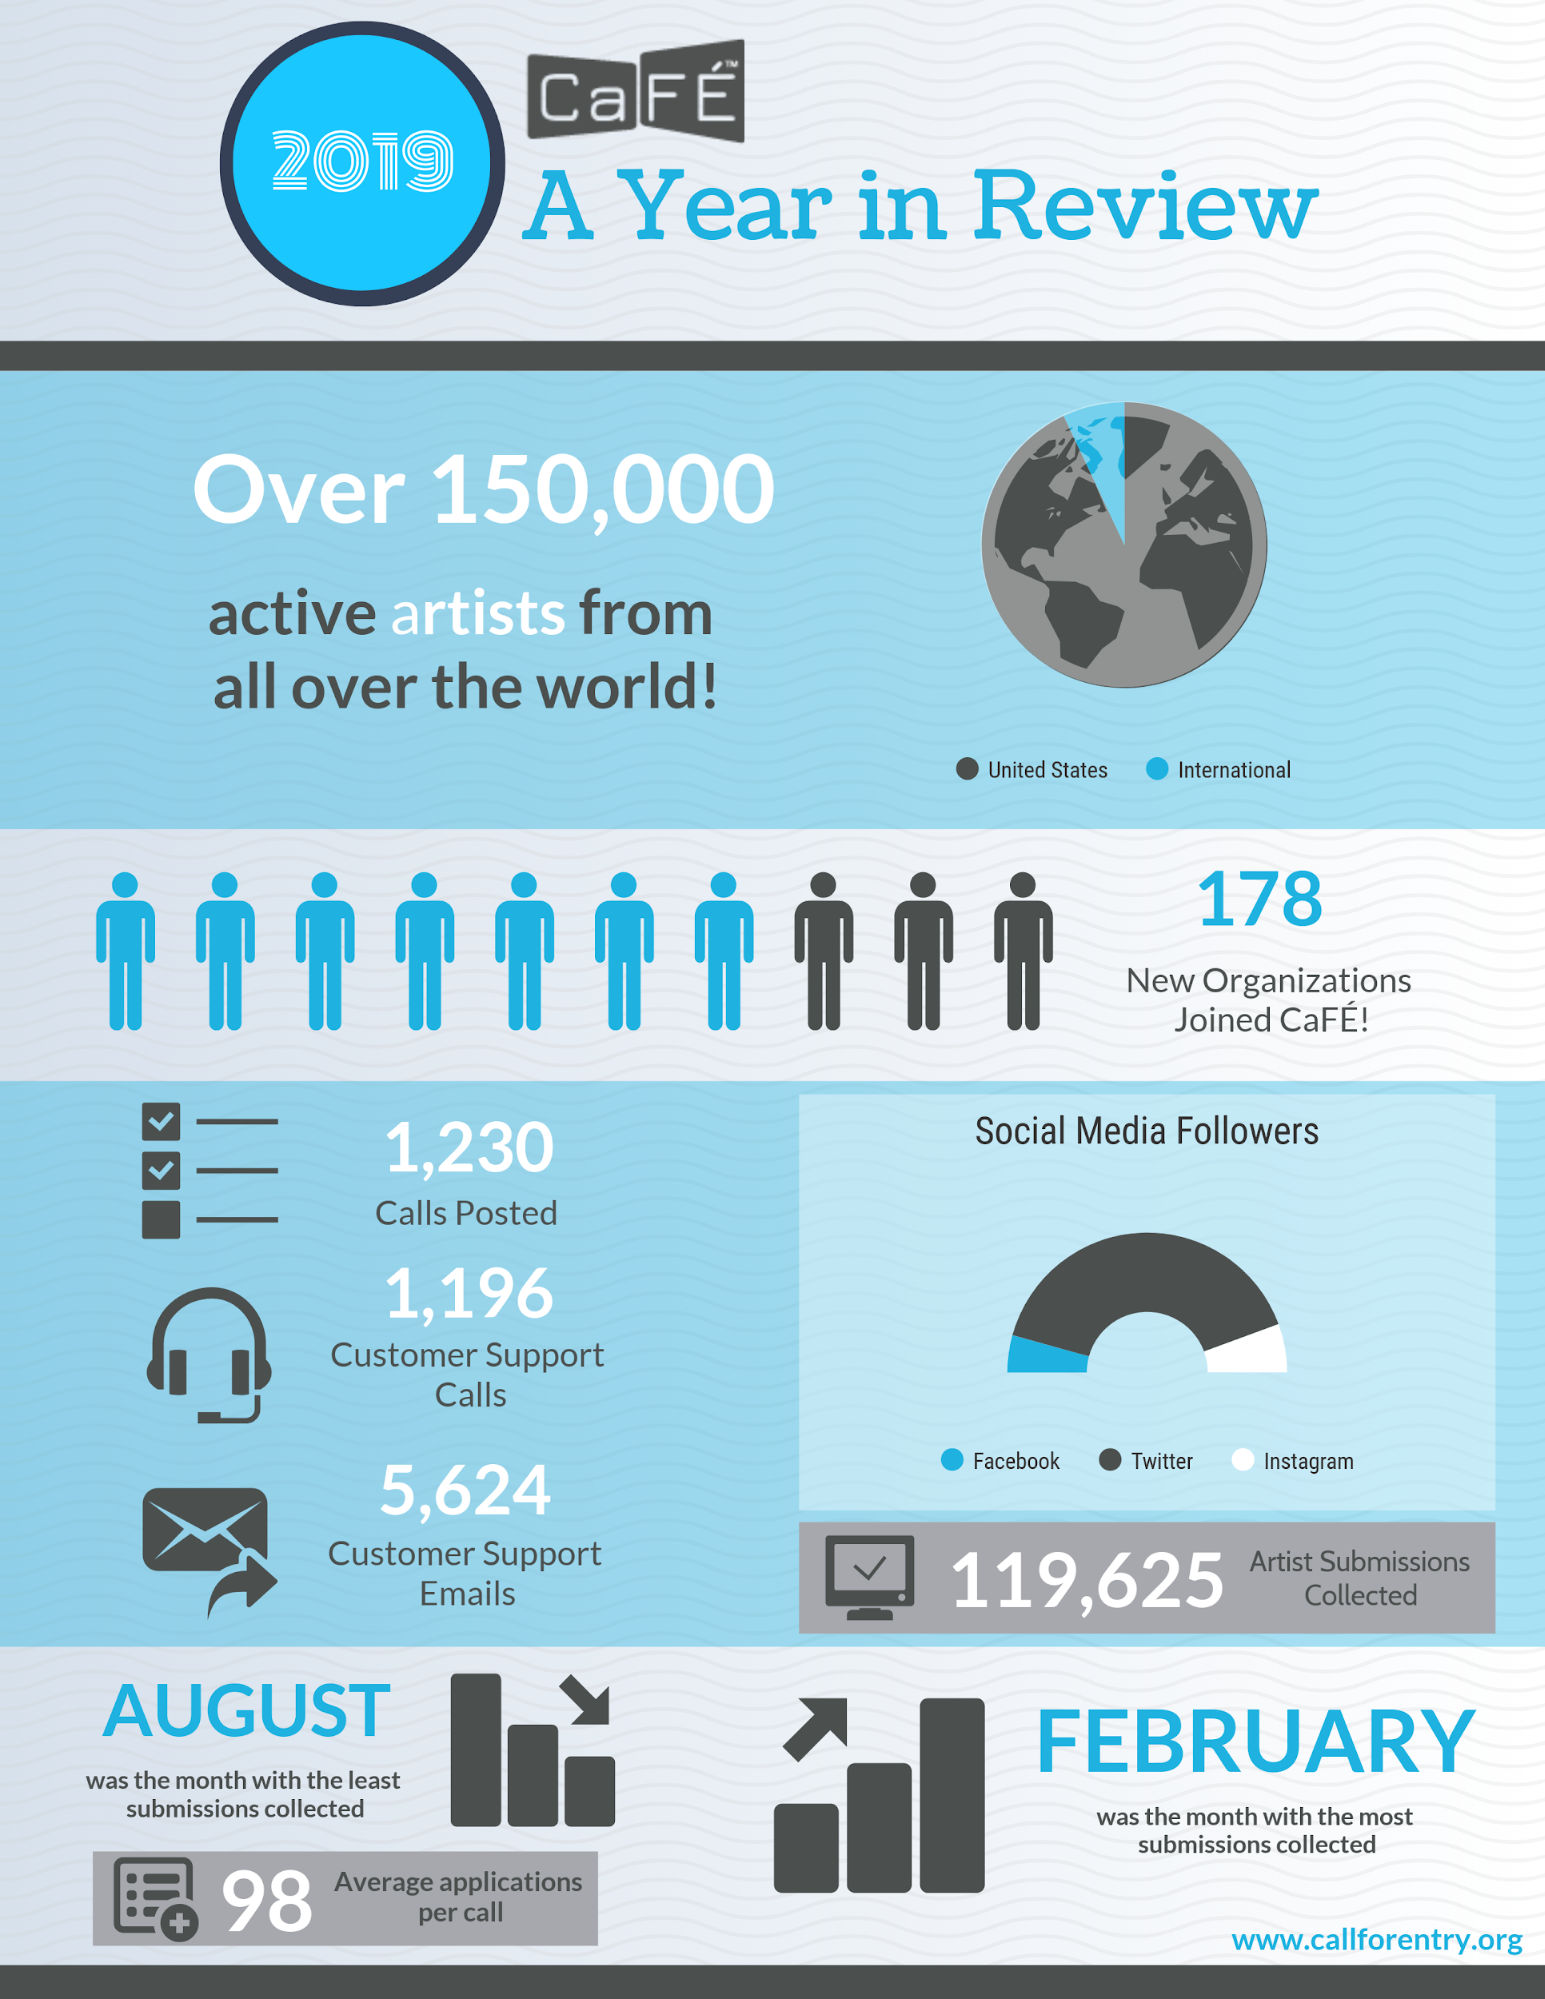 Infographic that displays key figures for 2019. text reads: over 150,000 active artists from all over the world, 178 new organizations joined CaFE, 1,230 calls posted, 1,196 customer support calls, 5,624 customer support emails, 119,625 artist submissions collected, February had the most submissions collected and August had the least submissions collected.